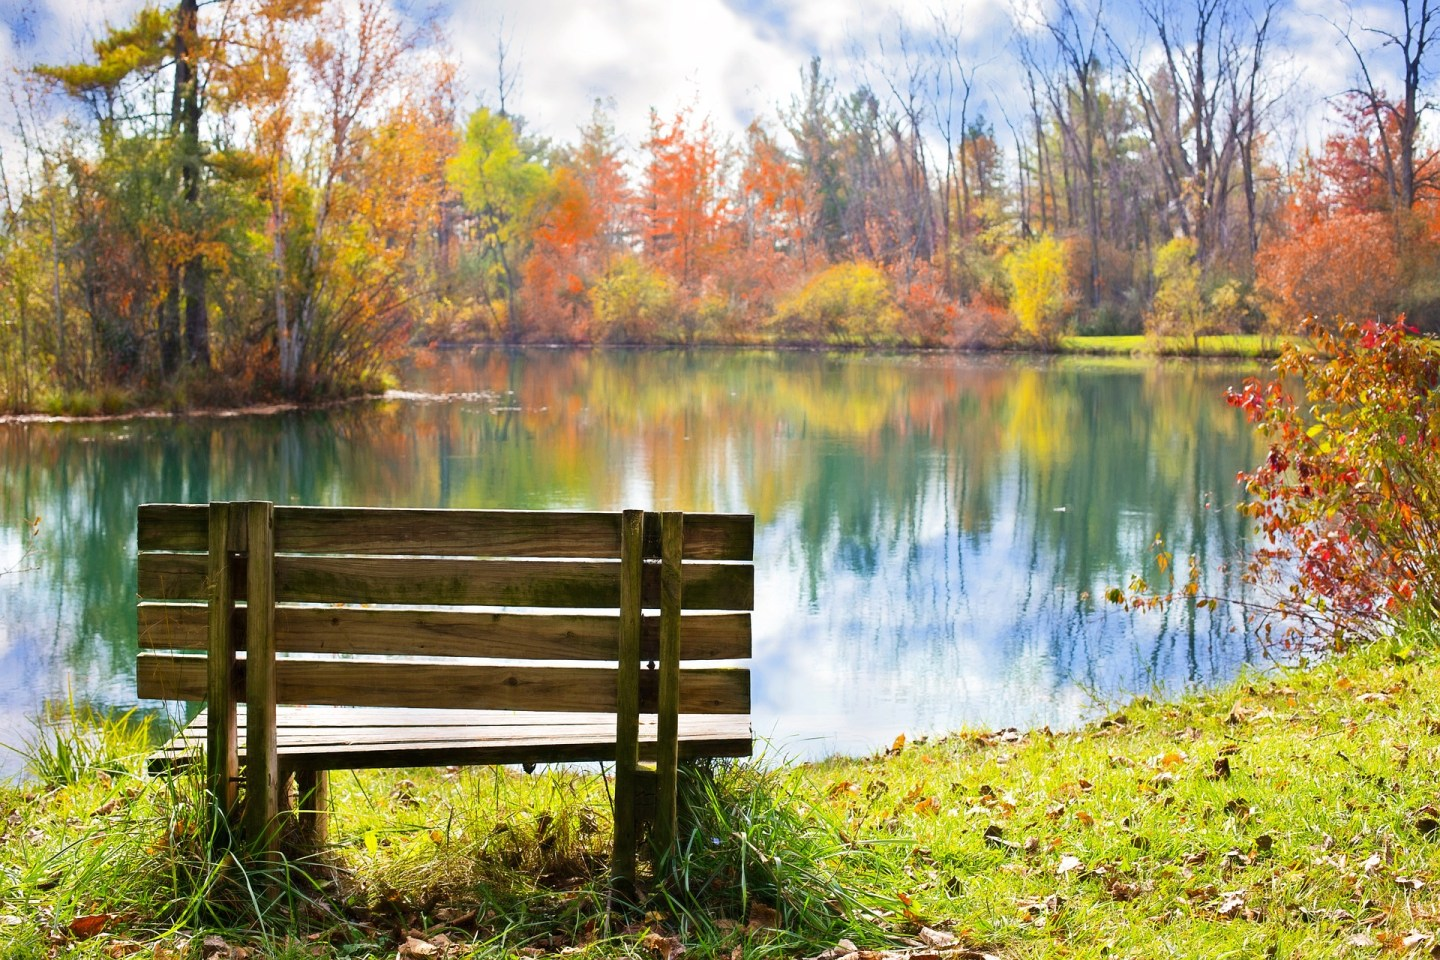 A photo of a bench in a park, with greenery, trees, and a lake in front.